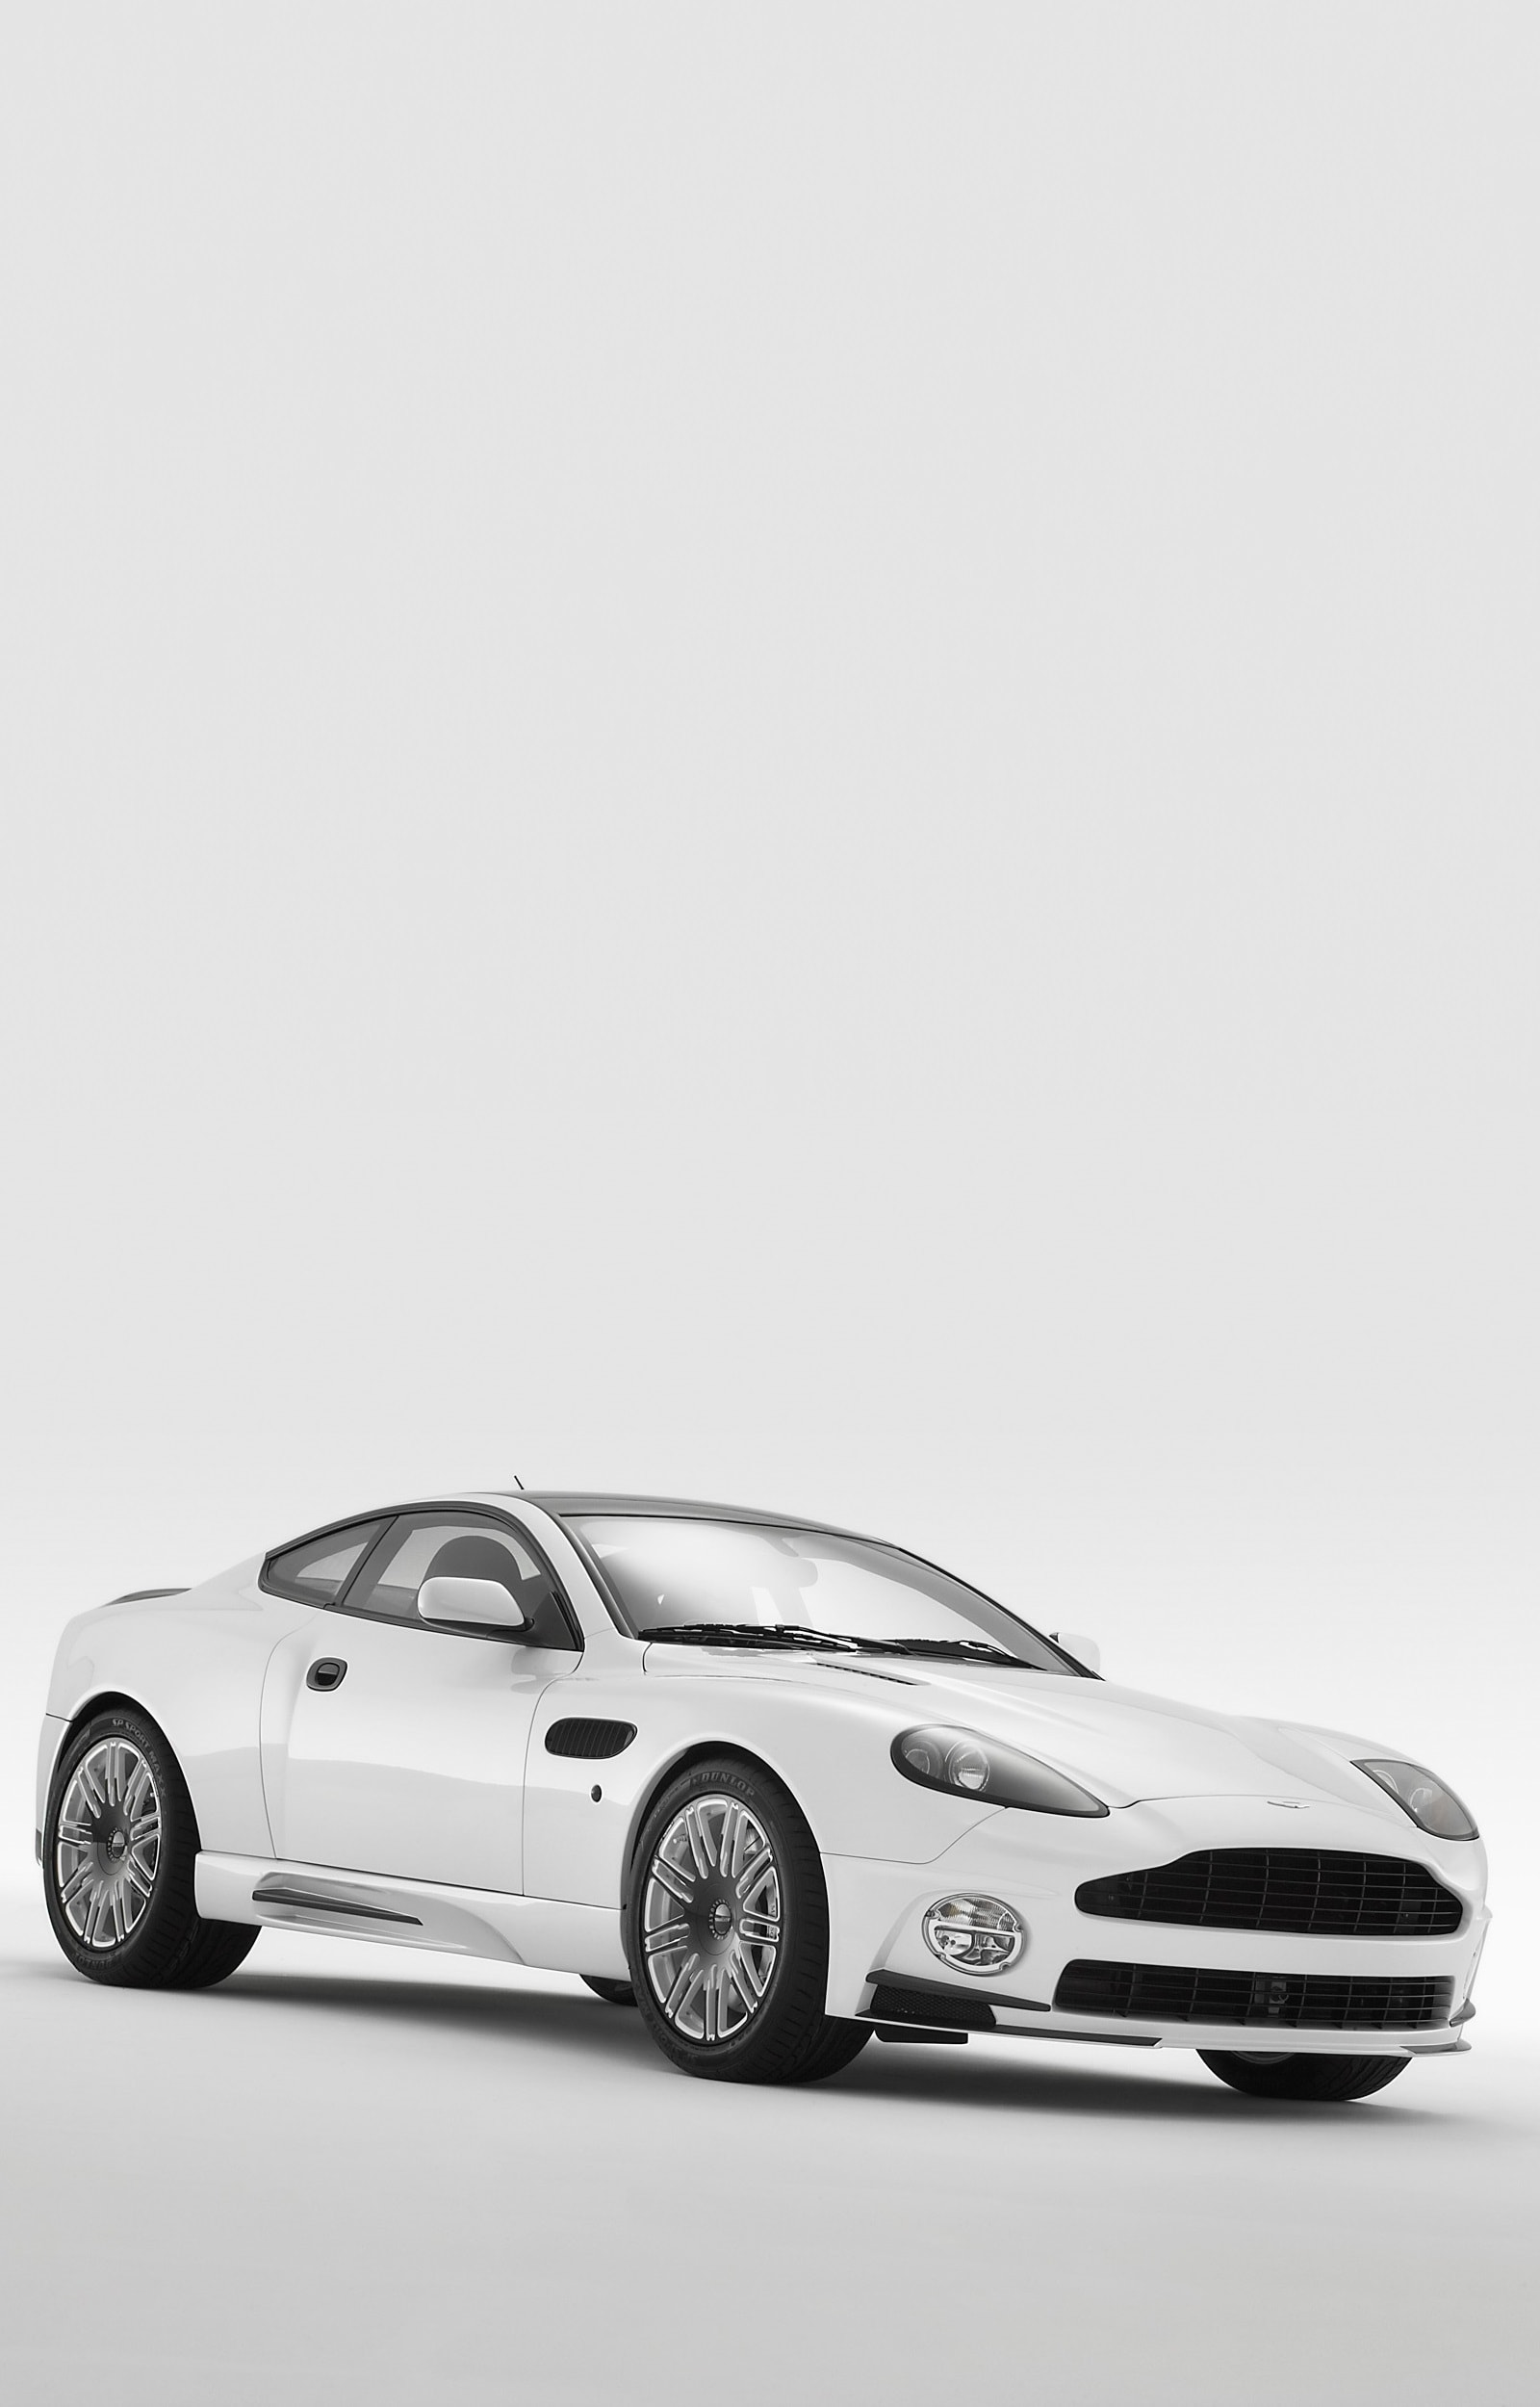 2001 Aston Martin Vanquish For mobile